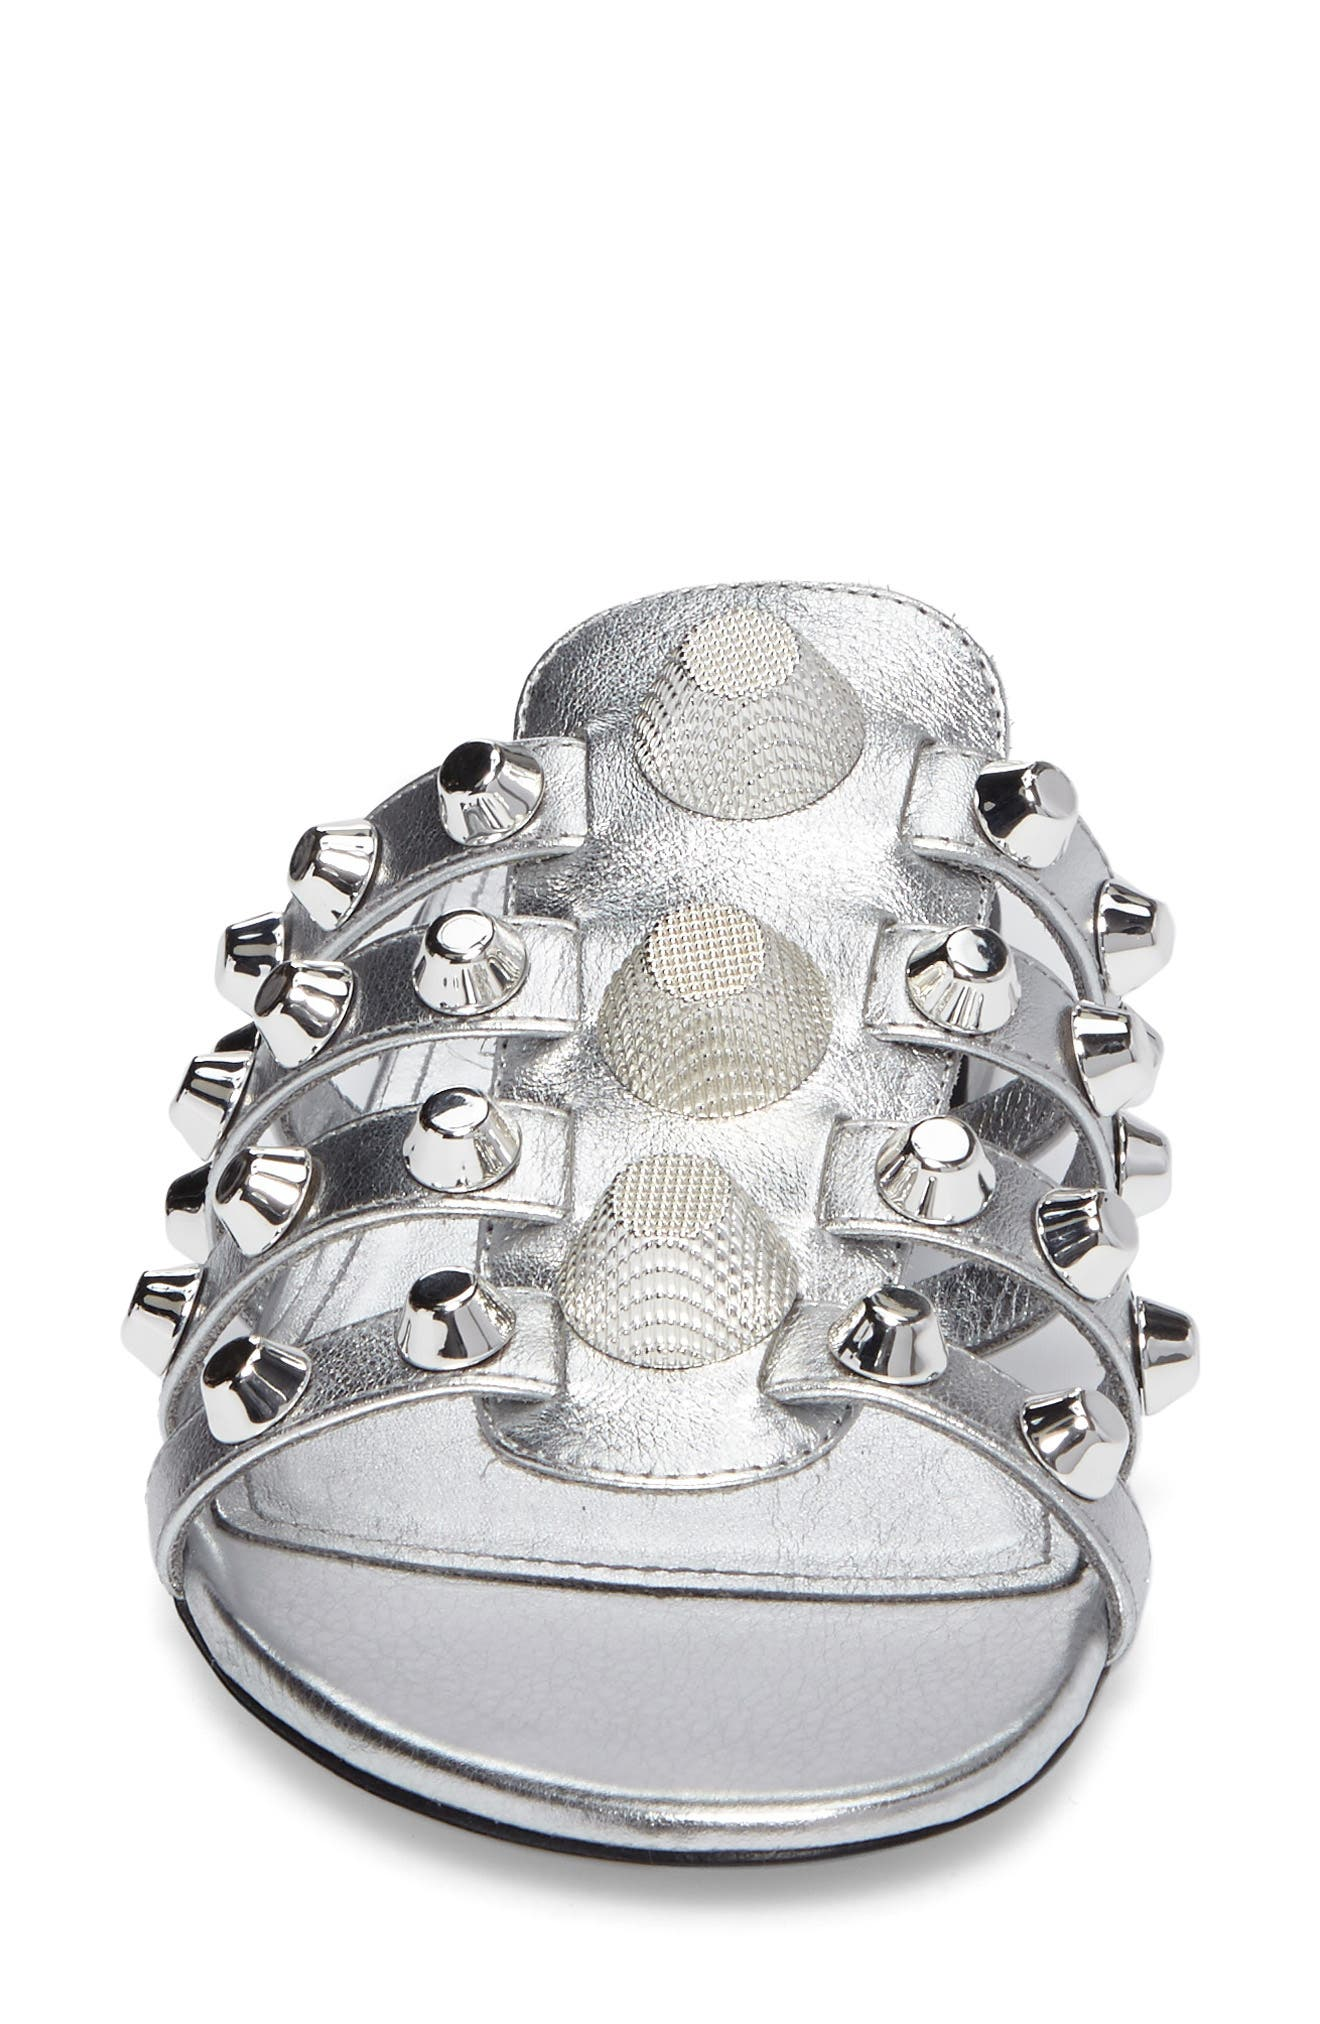 Arena Studded Slide Sandal,                             Alternate thumbnail 4, color,                             041